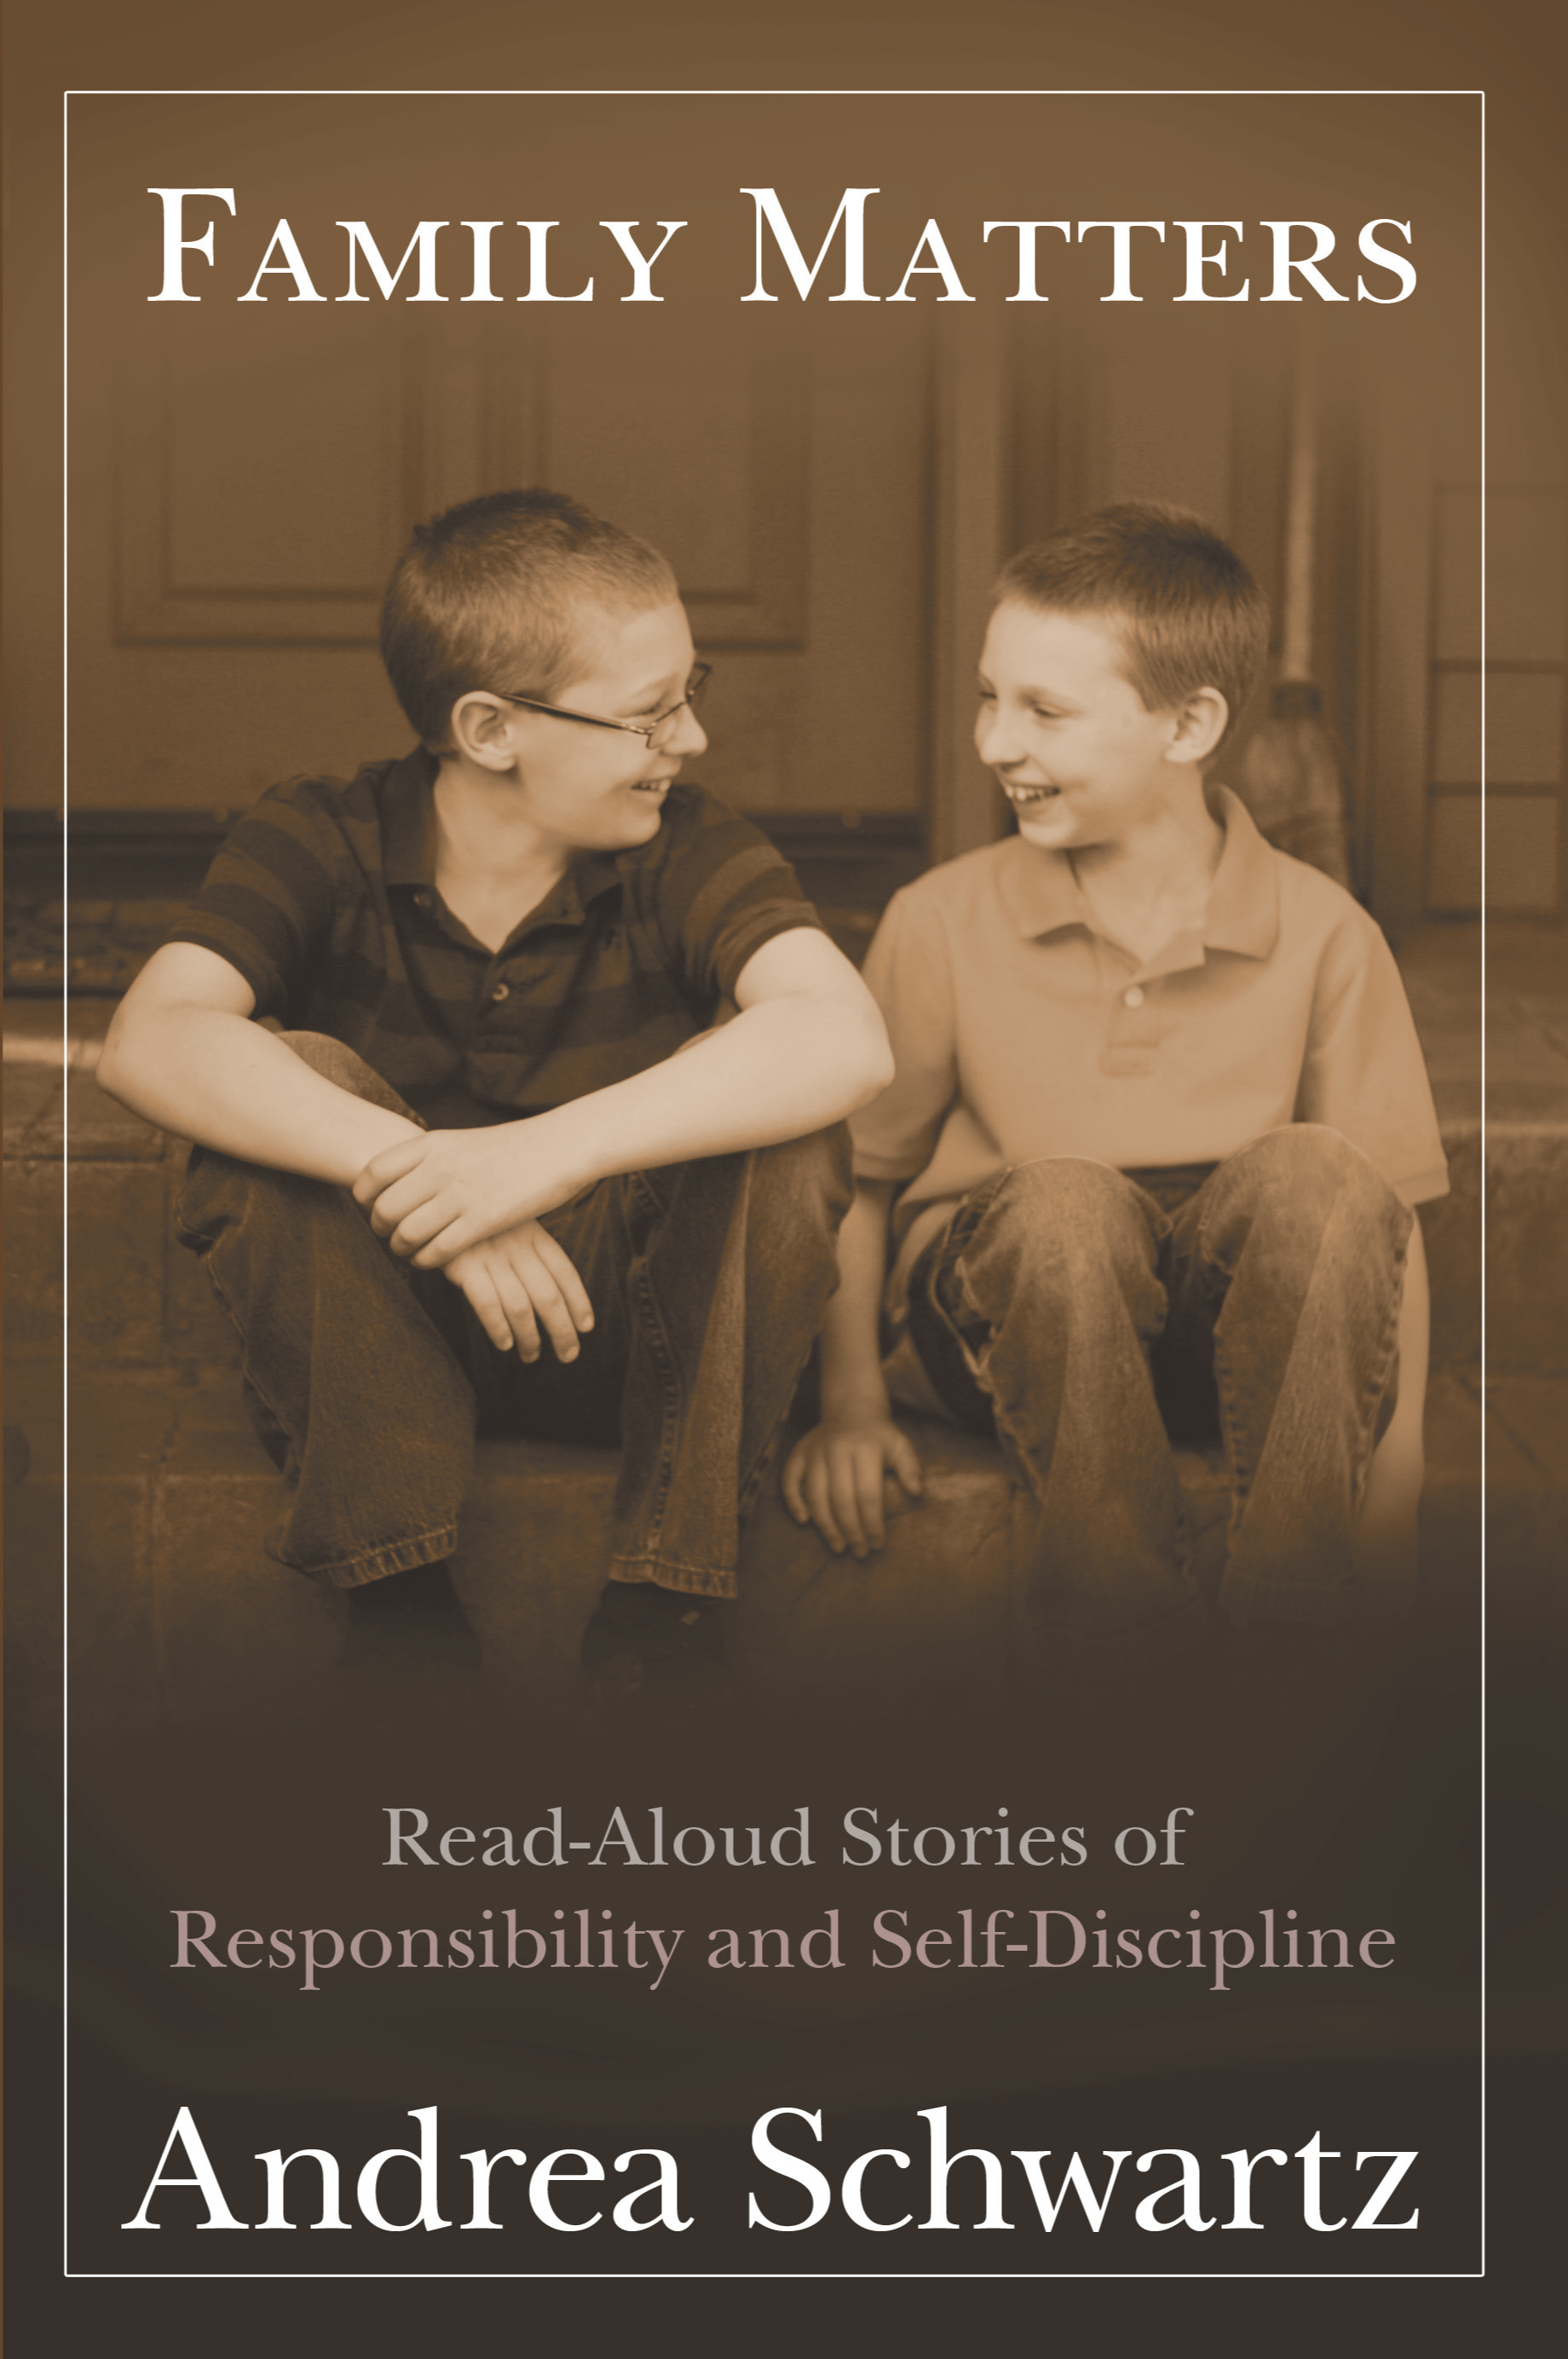 Family Matters: Read Aloud Stories of Responsibility and Self-Discipline